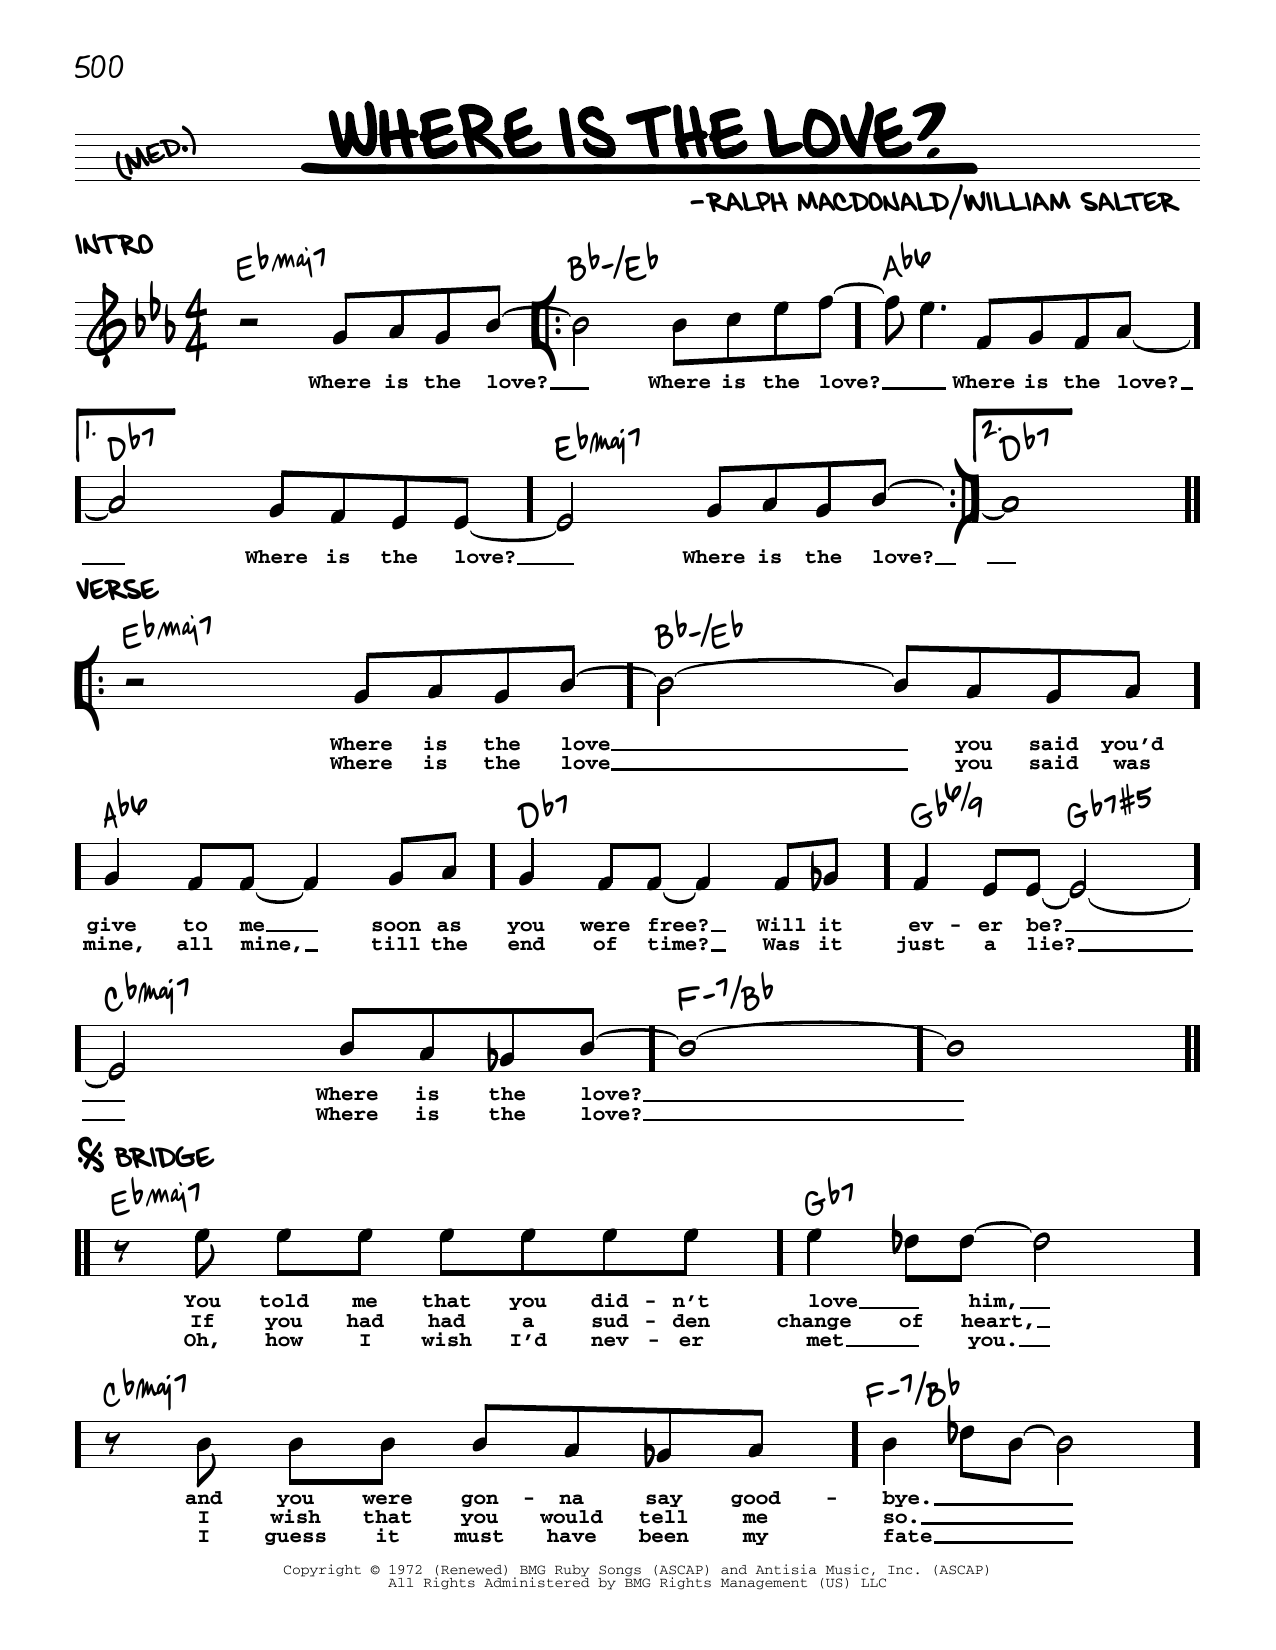 Roberta Flack and Donny Hathaway Where Is The Love? sheet music notes printable PDF score